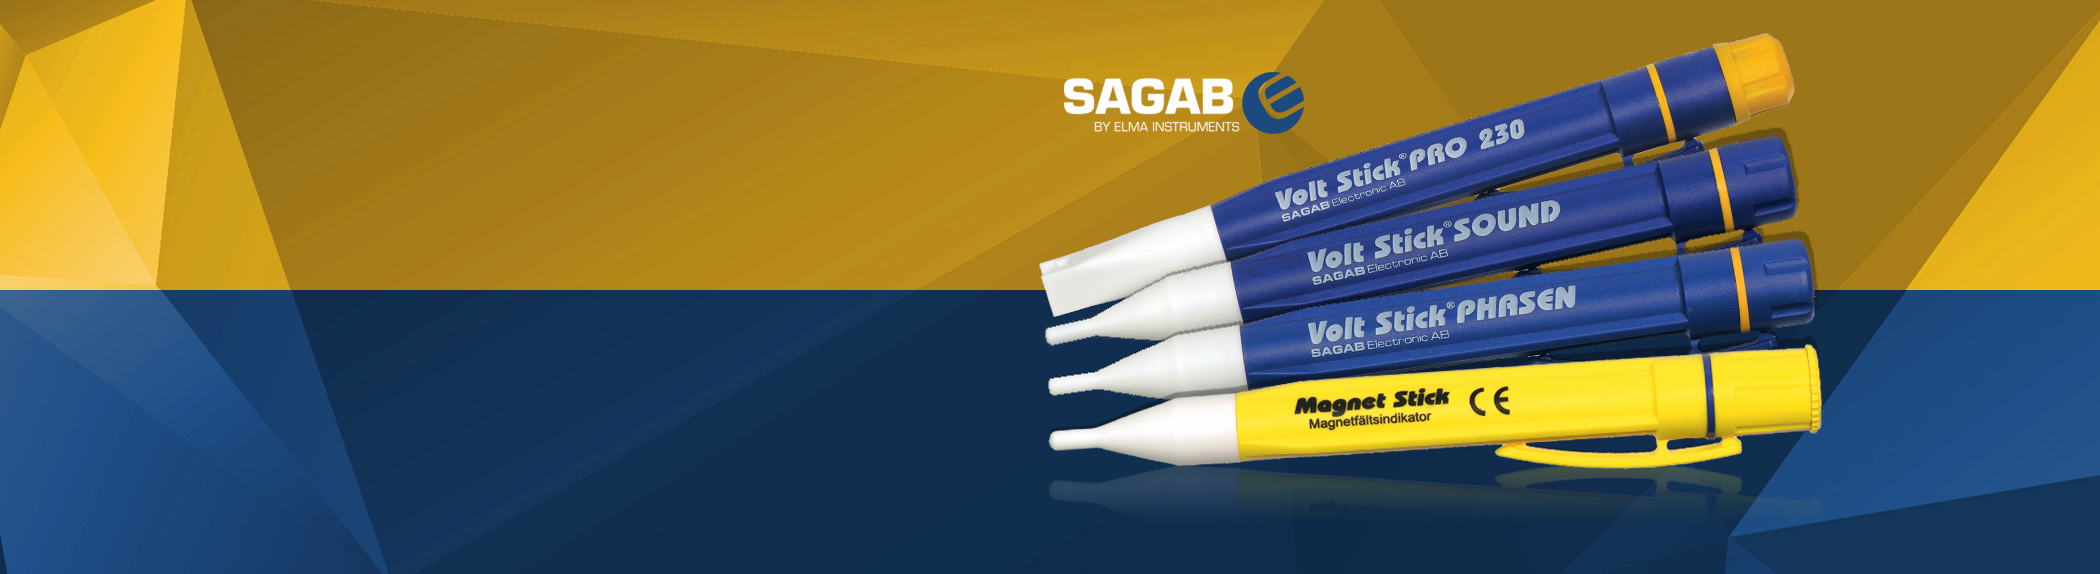 Sagab by Elma was the original inventor of the VoltStick®, <br>and today we offer a wide programme of sticks, like VoltStick®, MagnetStick, VoltStick® Sound and many more... 1